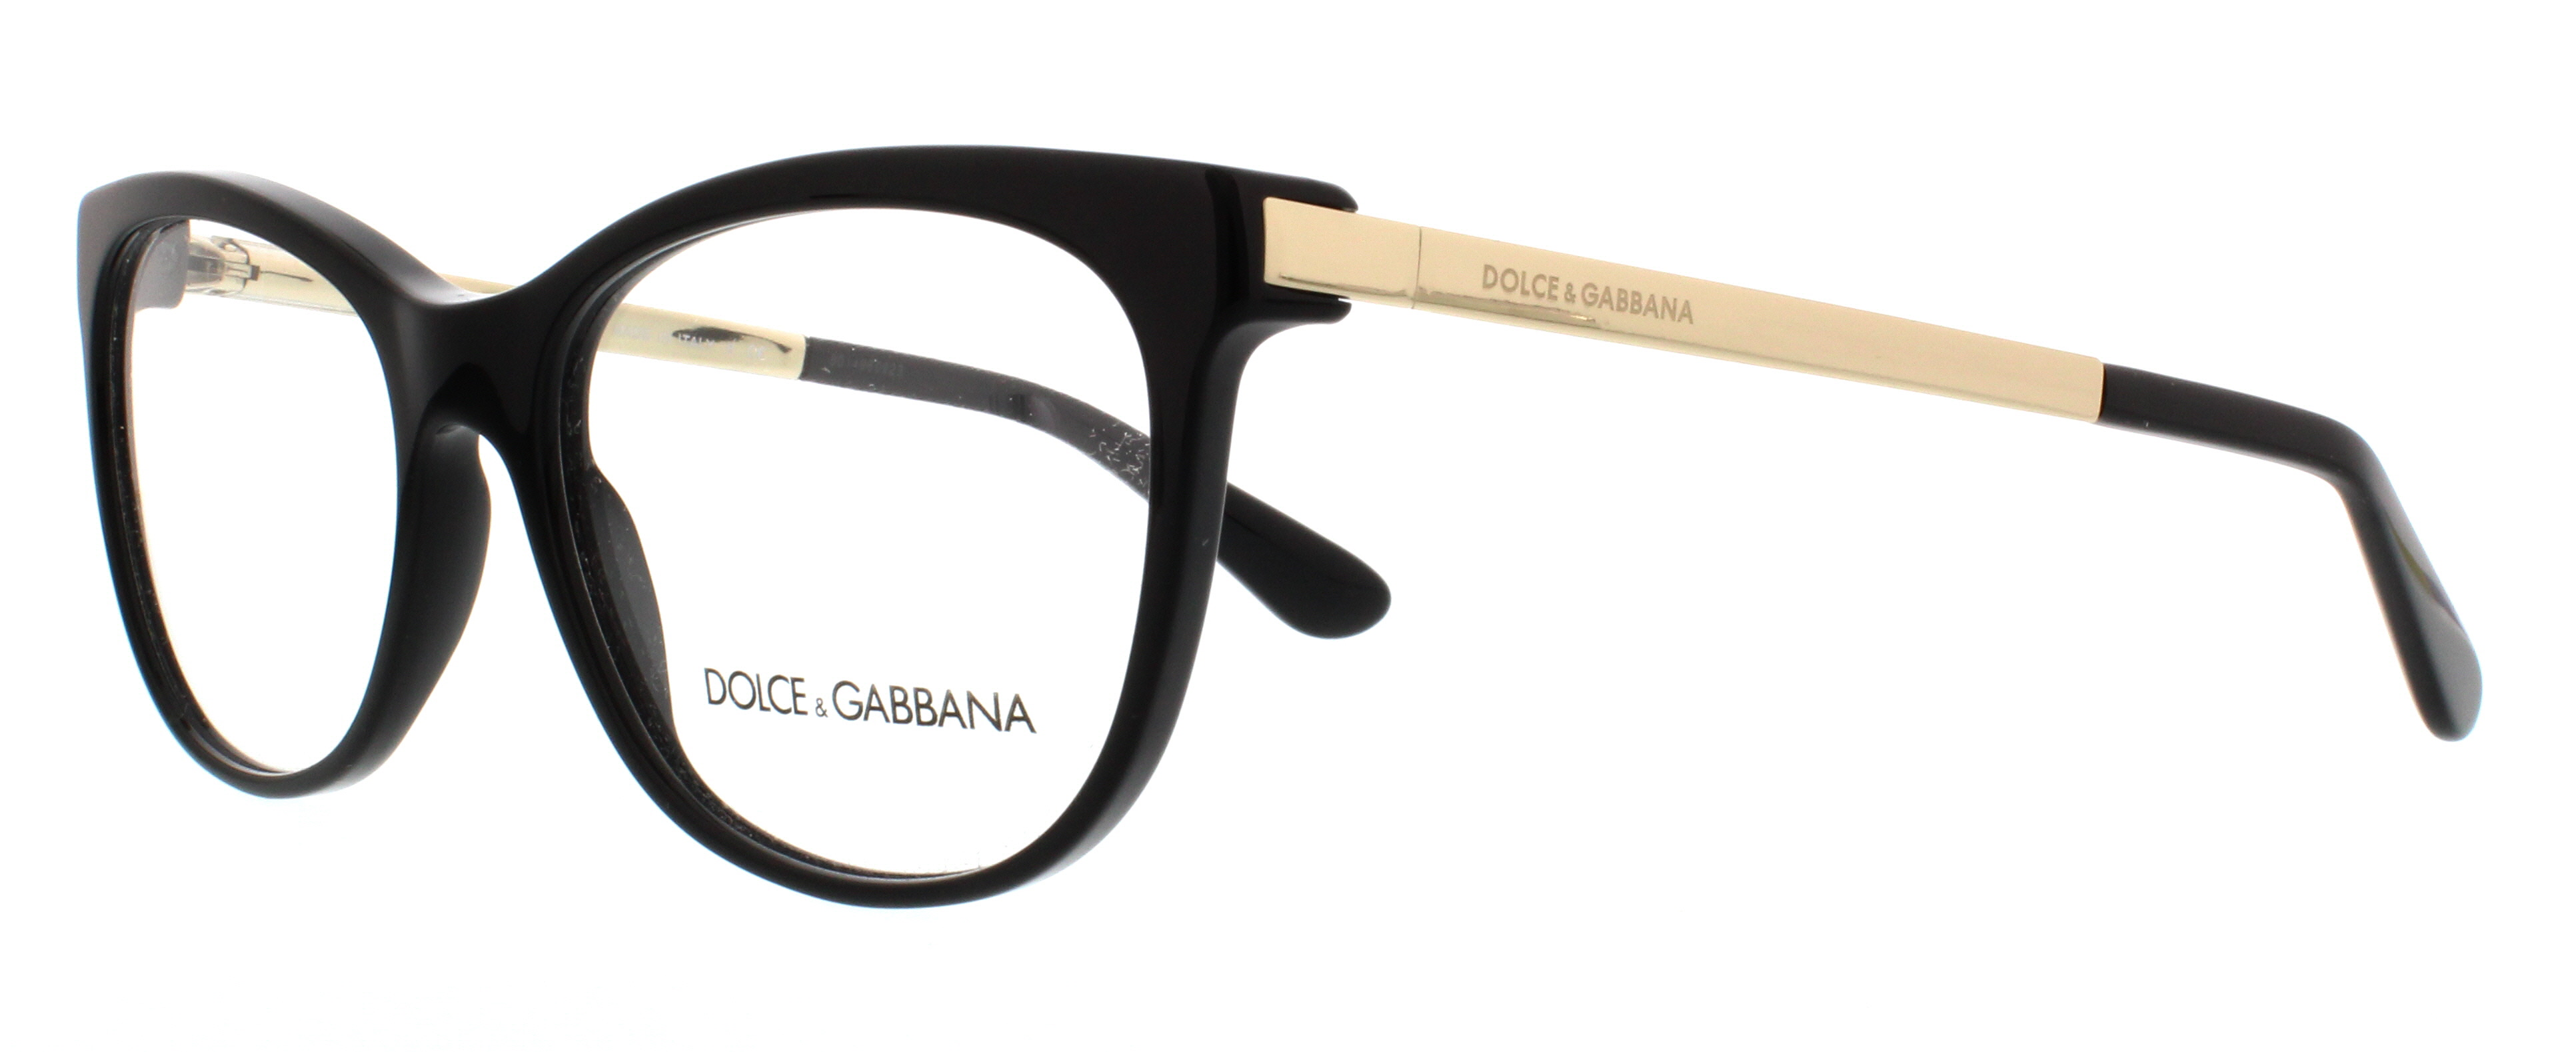 2bab8c524a3e Dolce And Gabbana Glasses Frames Ebay - Bitterroot Public Library